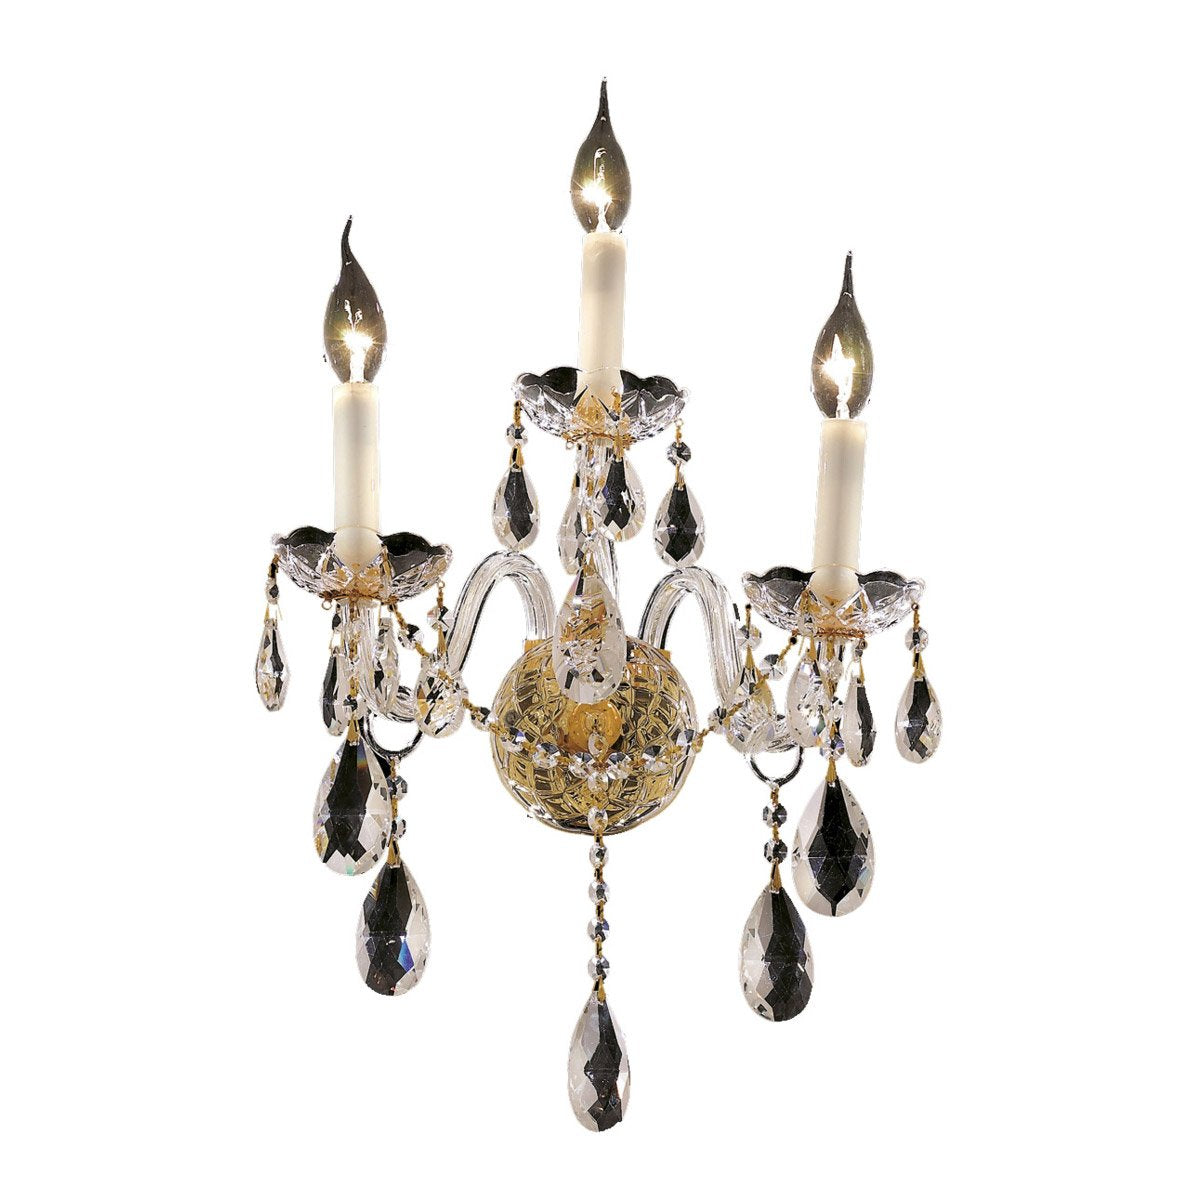 Alexandria 13 Crystal Wall Sconce With 3 Lights - Gold Finish And Spectra Swarovski Crystal Wall Sconce